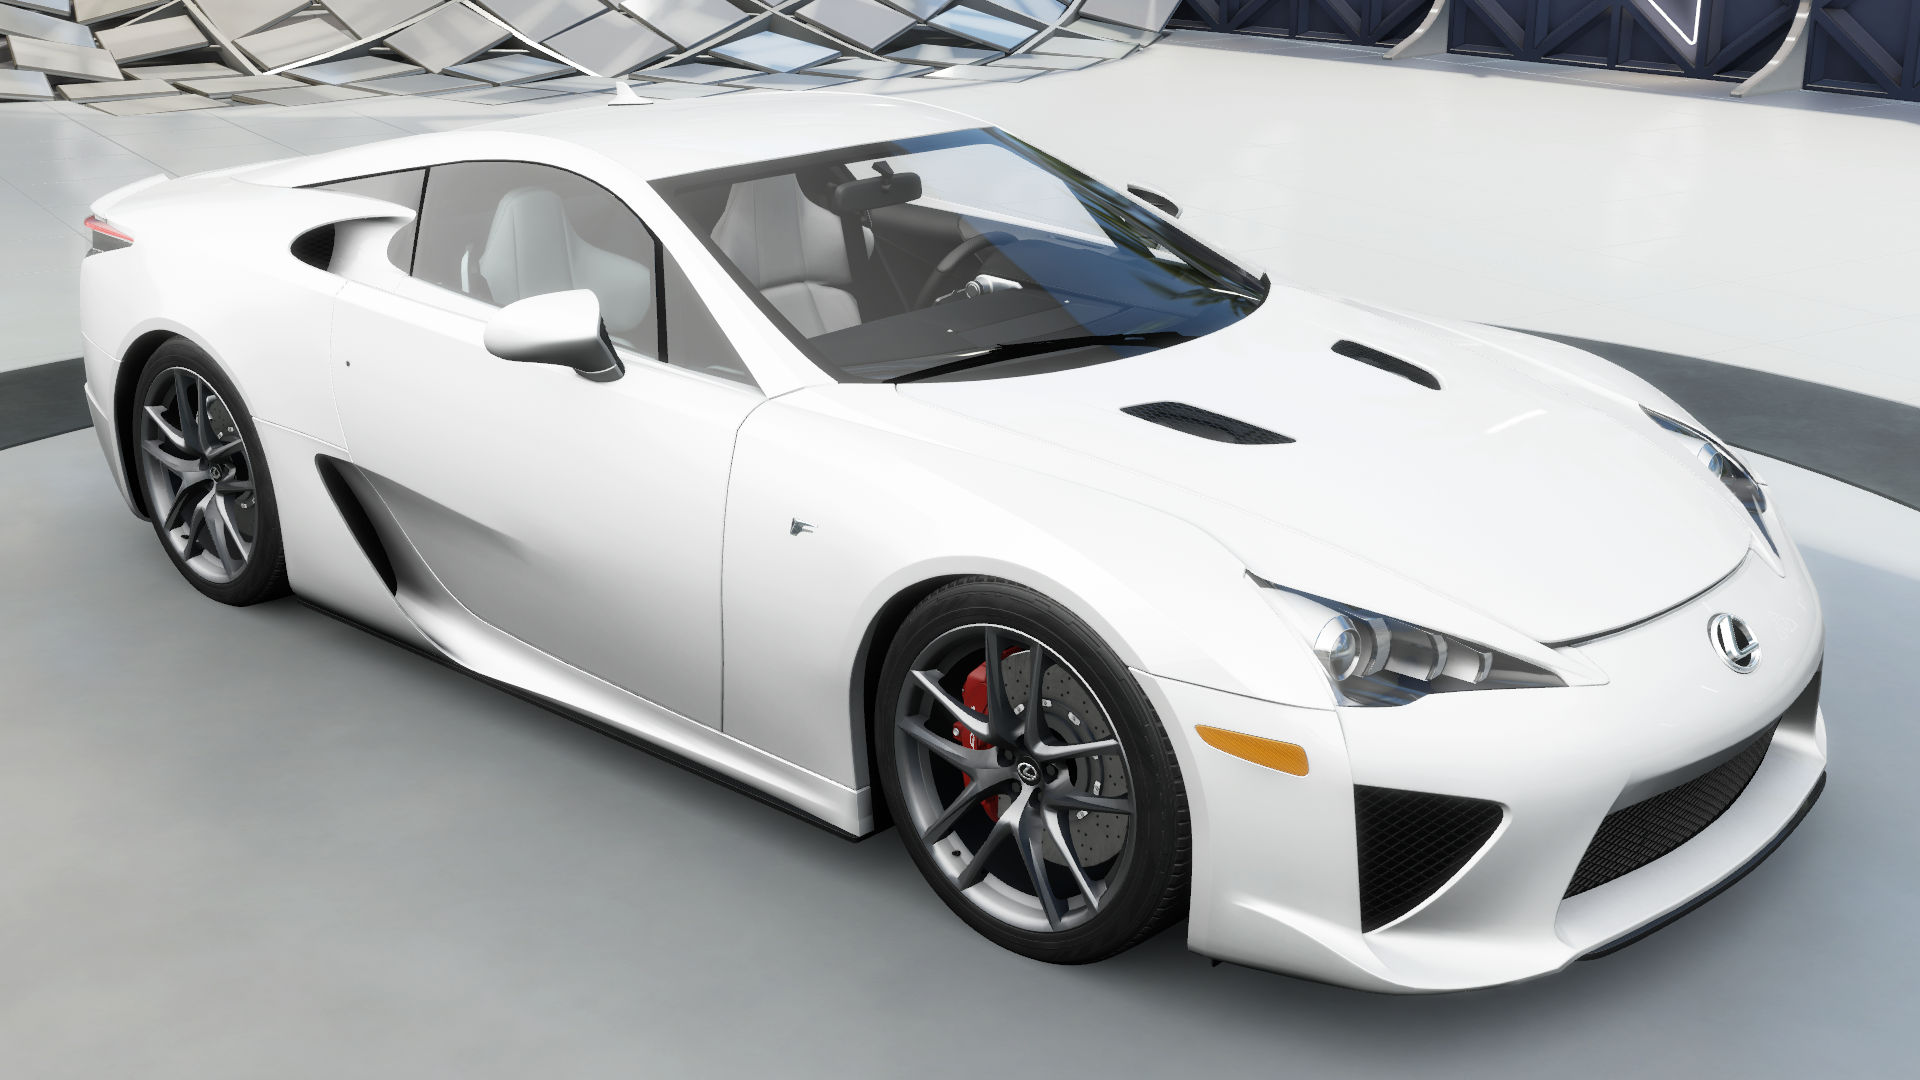 https://vignette.wikia.nocookie.net/forzamotorsport/images/4/40/FH3_Lexus_LFA.jpg/revision/latest?cb=20171019062214